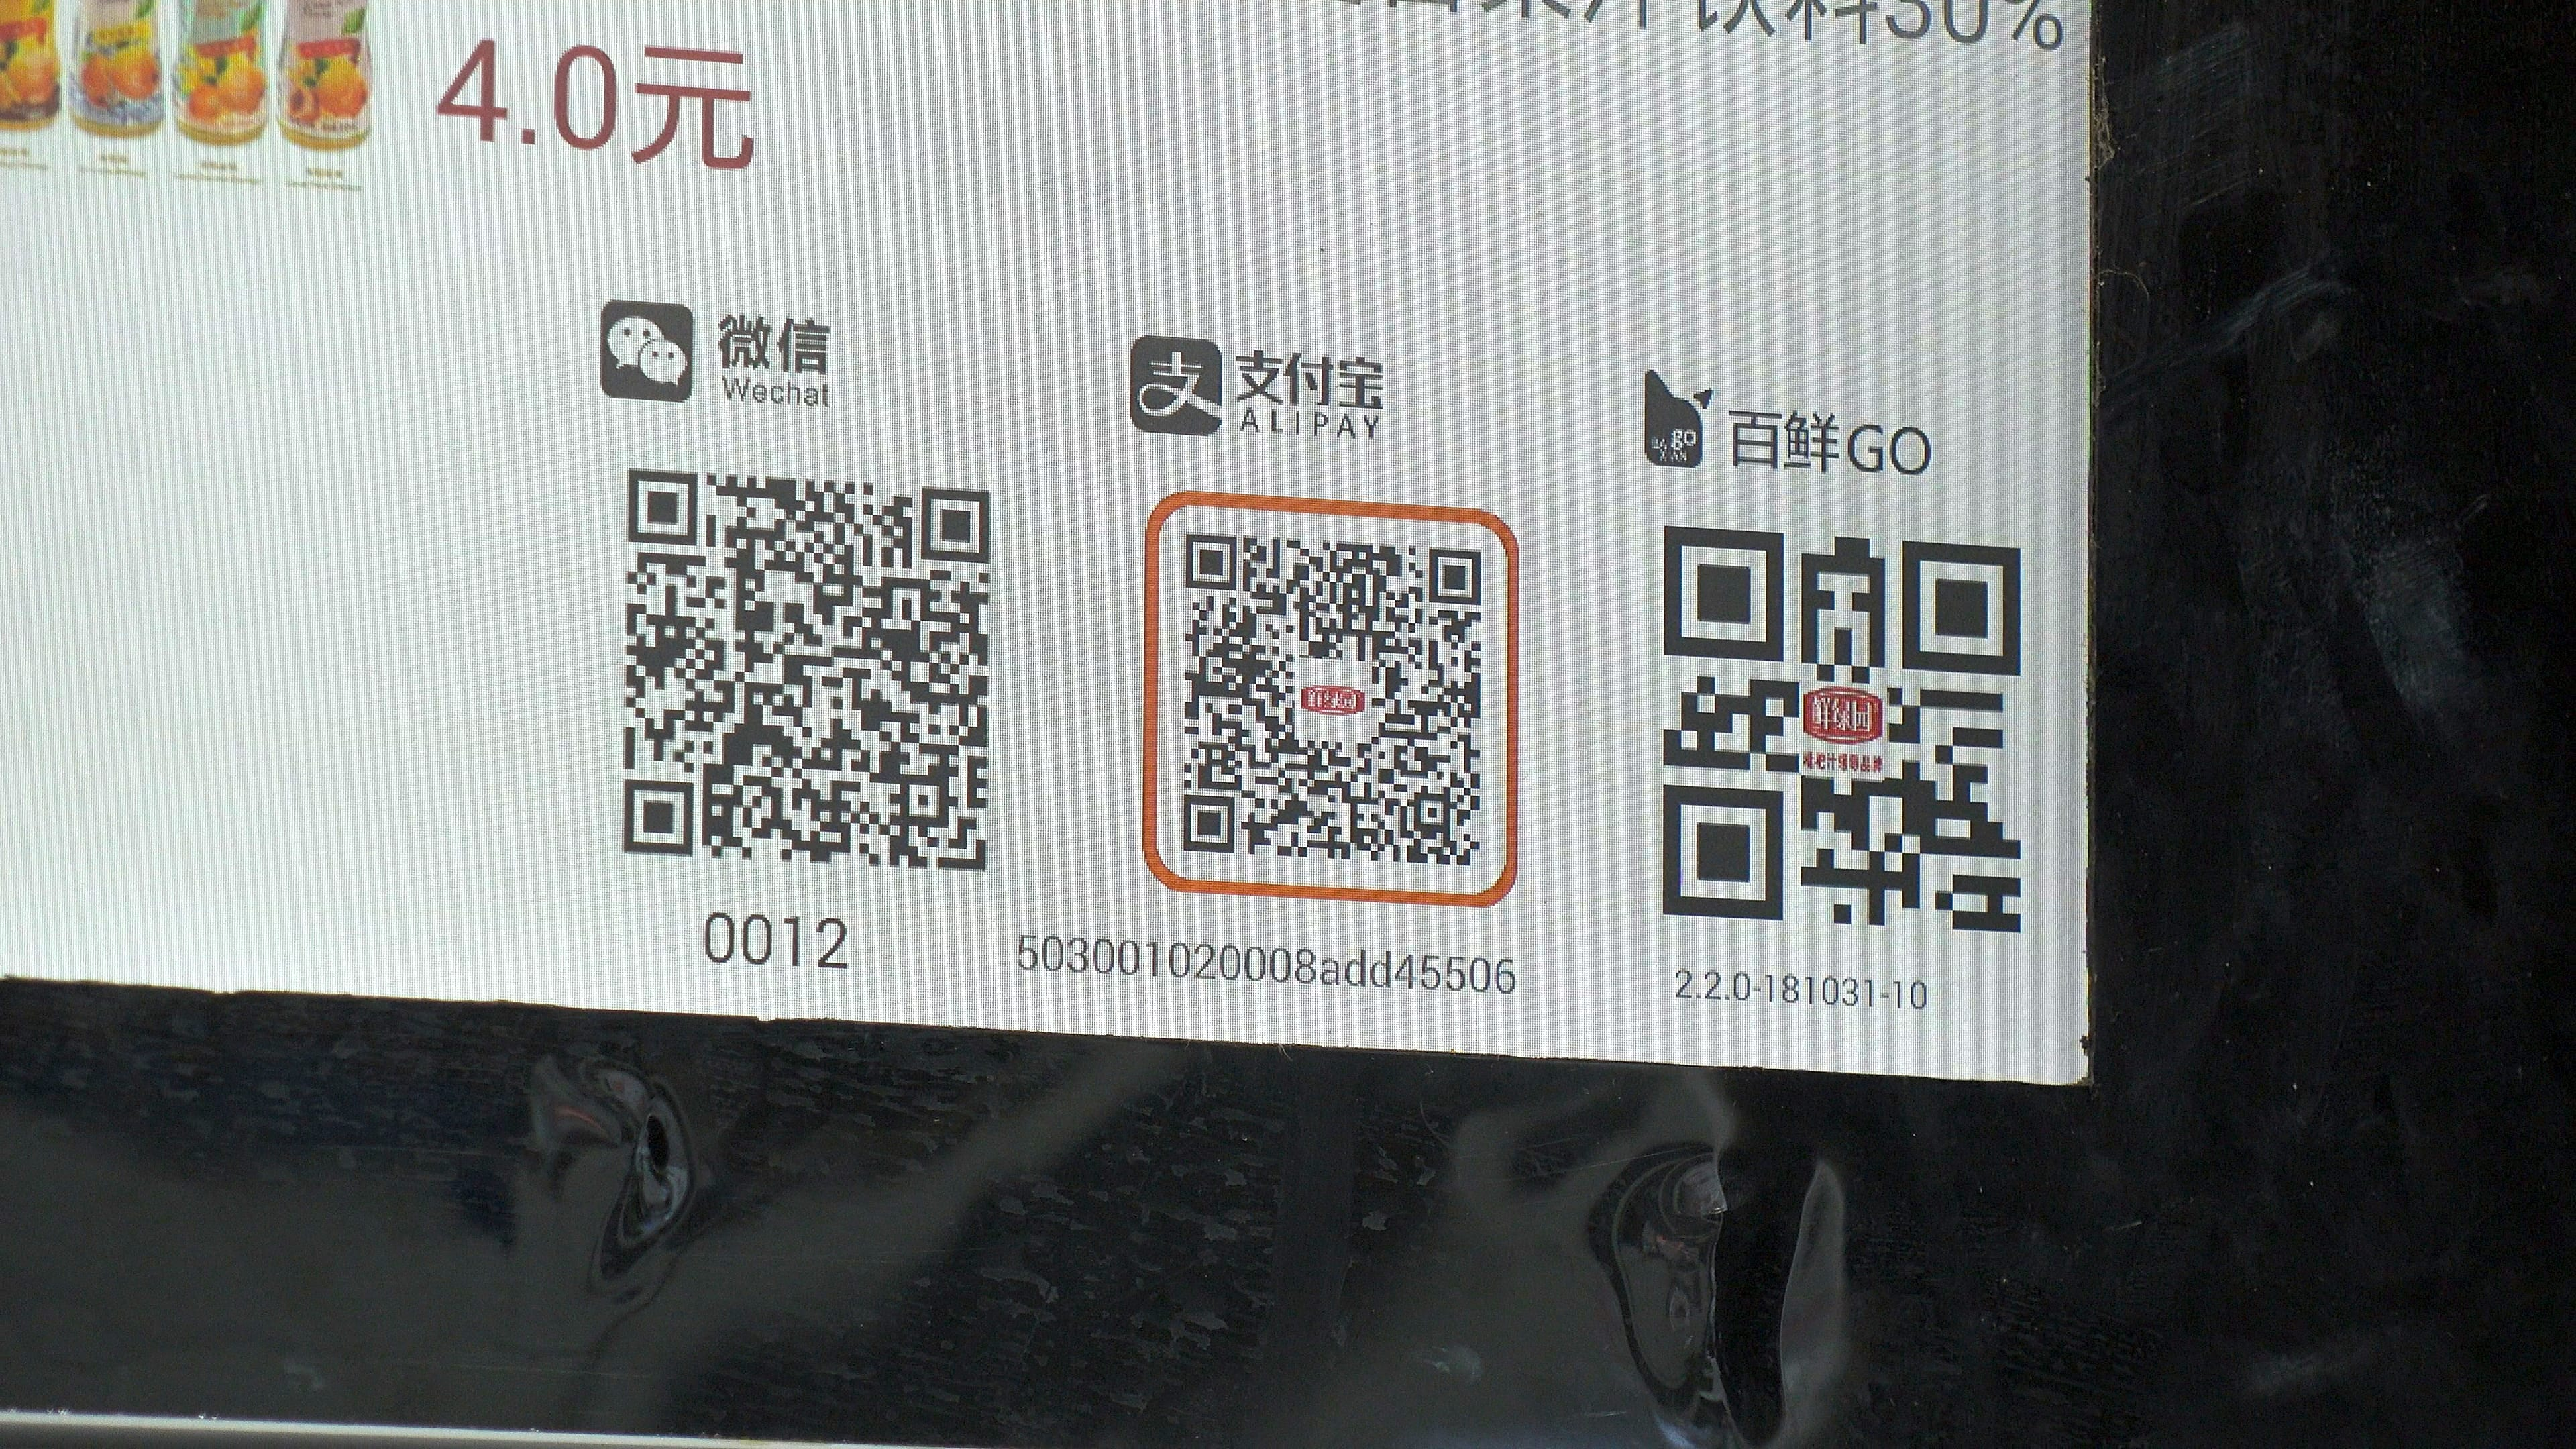 tencent-unionpay-integrate-qr-codes-china